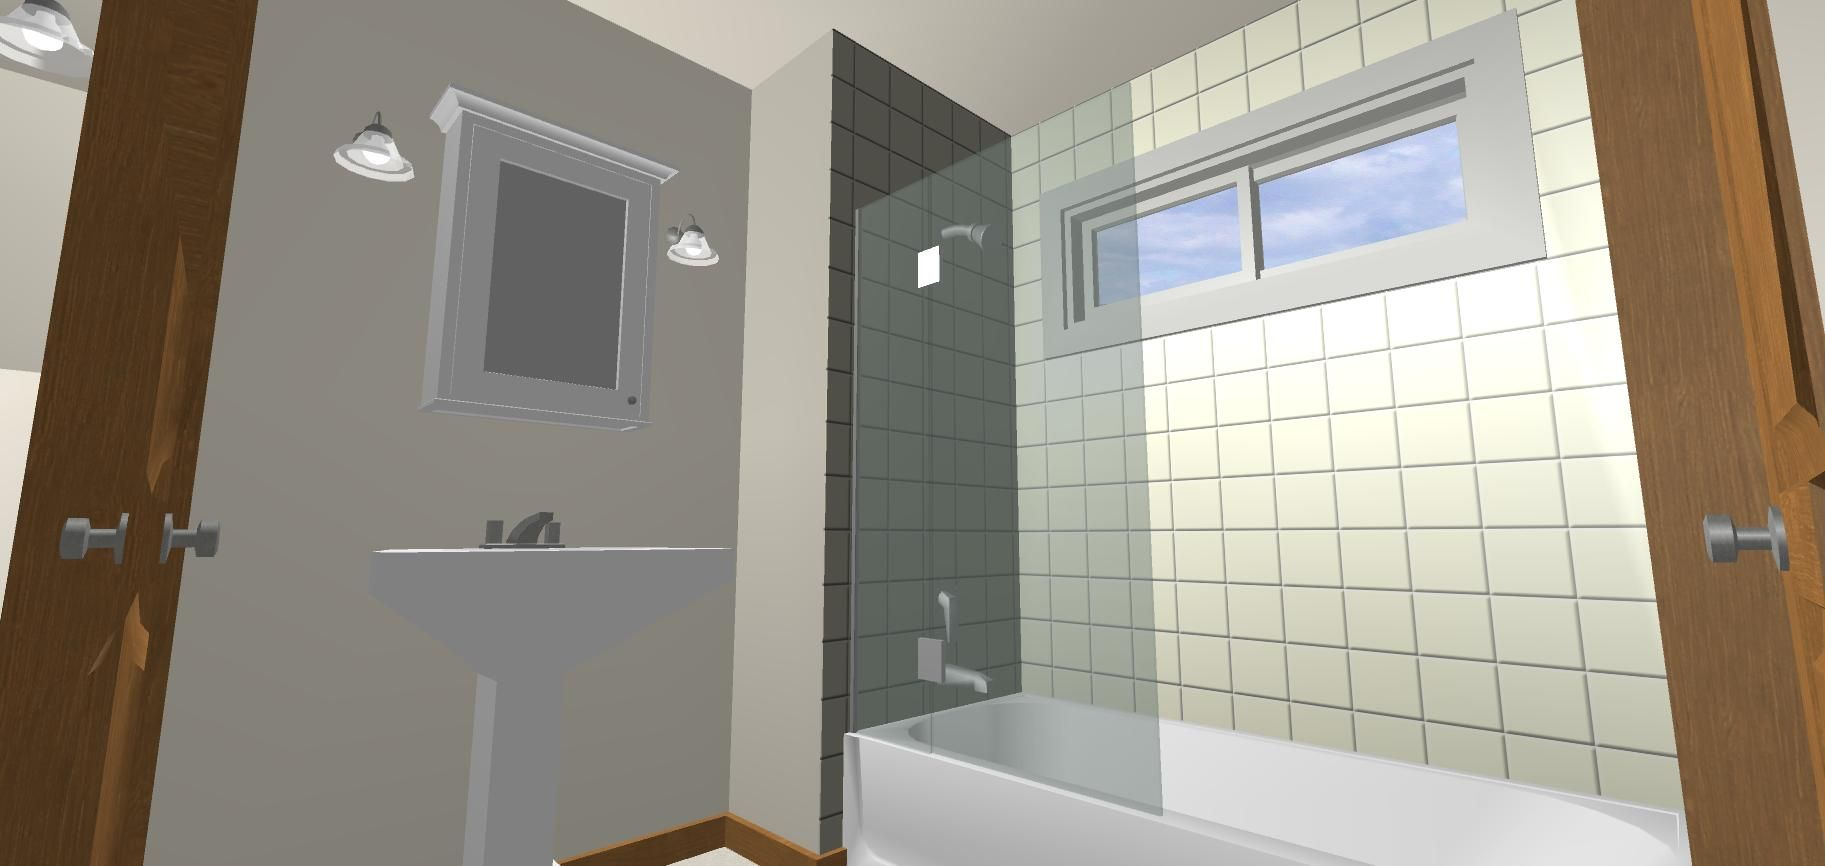 Vinyl walls for bathrooms - Window In Shower What Other Window Products No Vinyl Please Might Be Considered